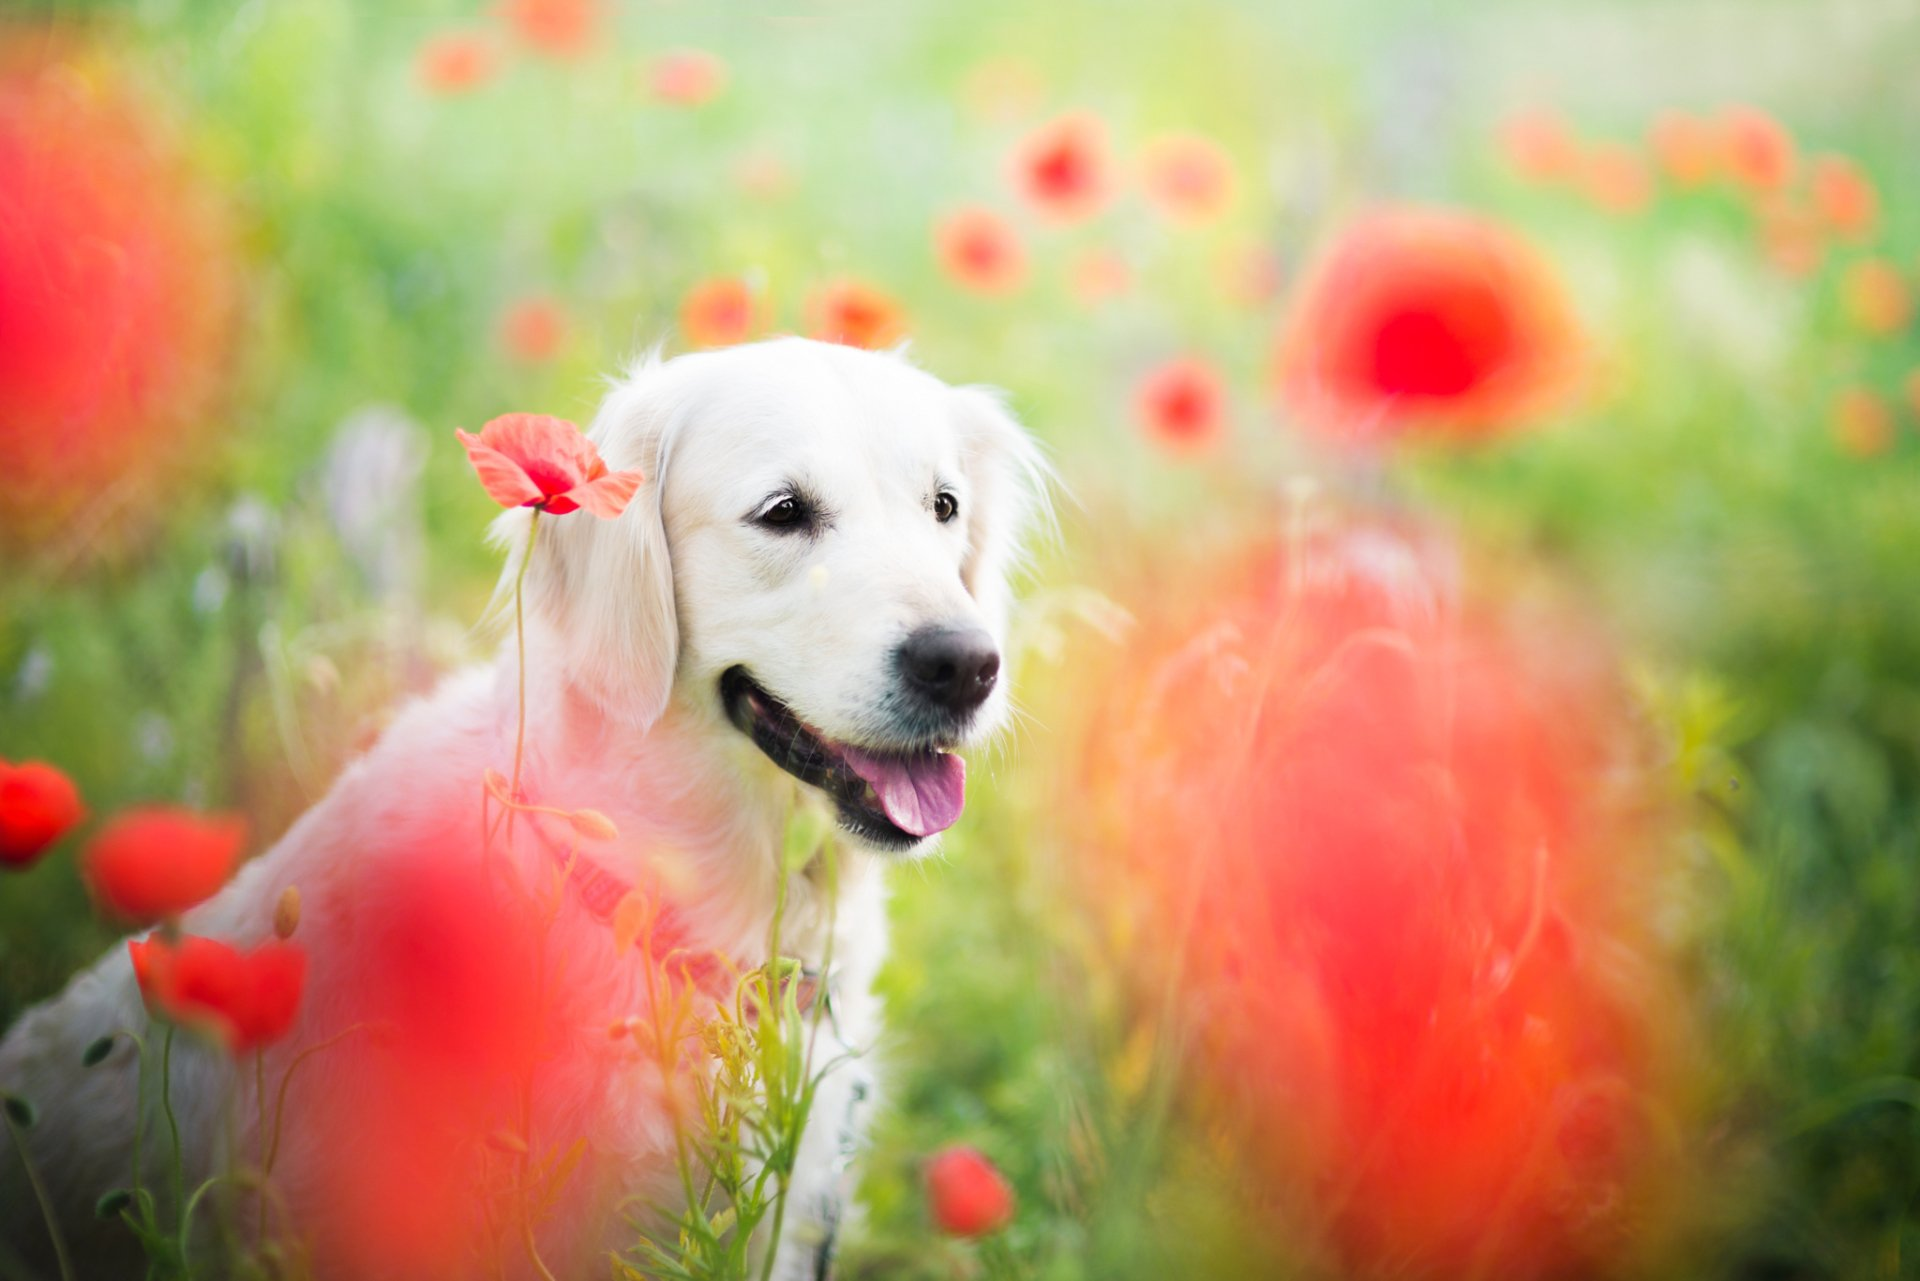 Animal - Golden Retriever  Dog Field Flower Poppy Red Flower Bokeh Wallpaper